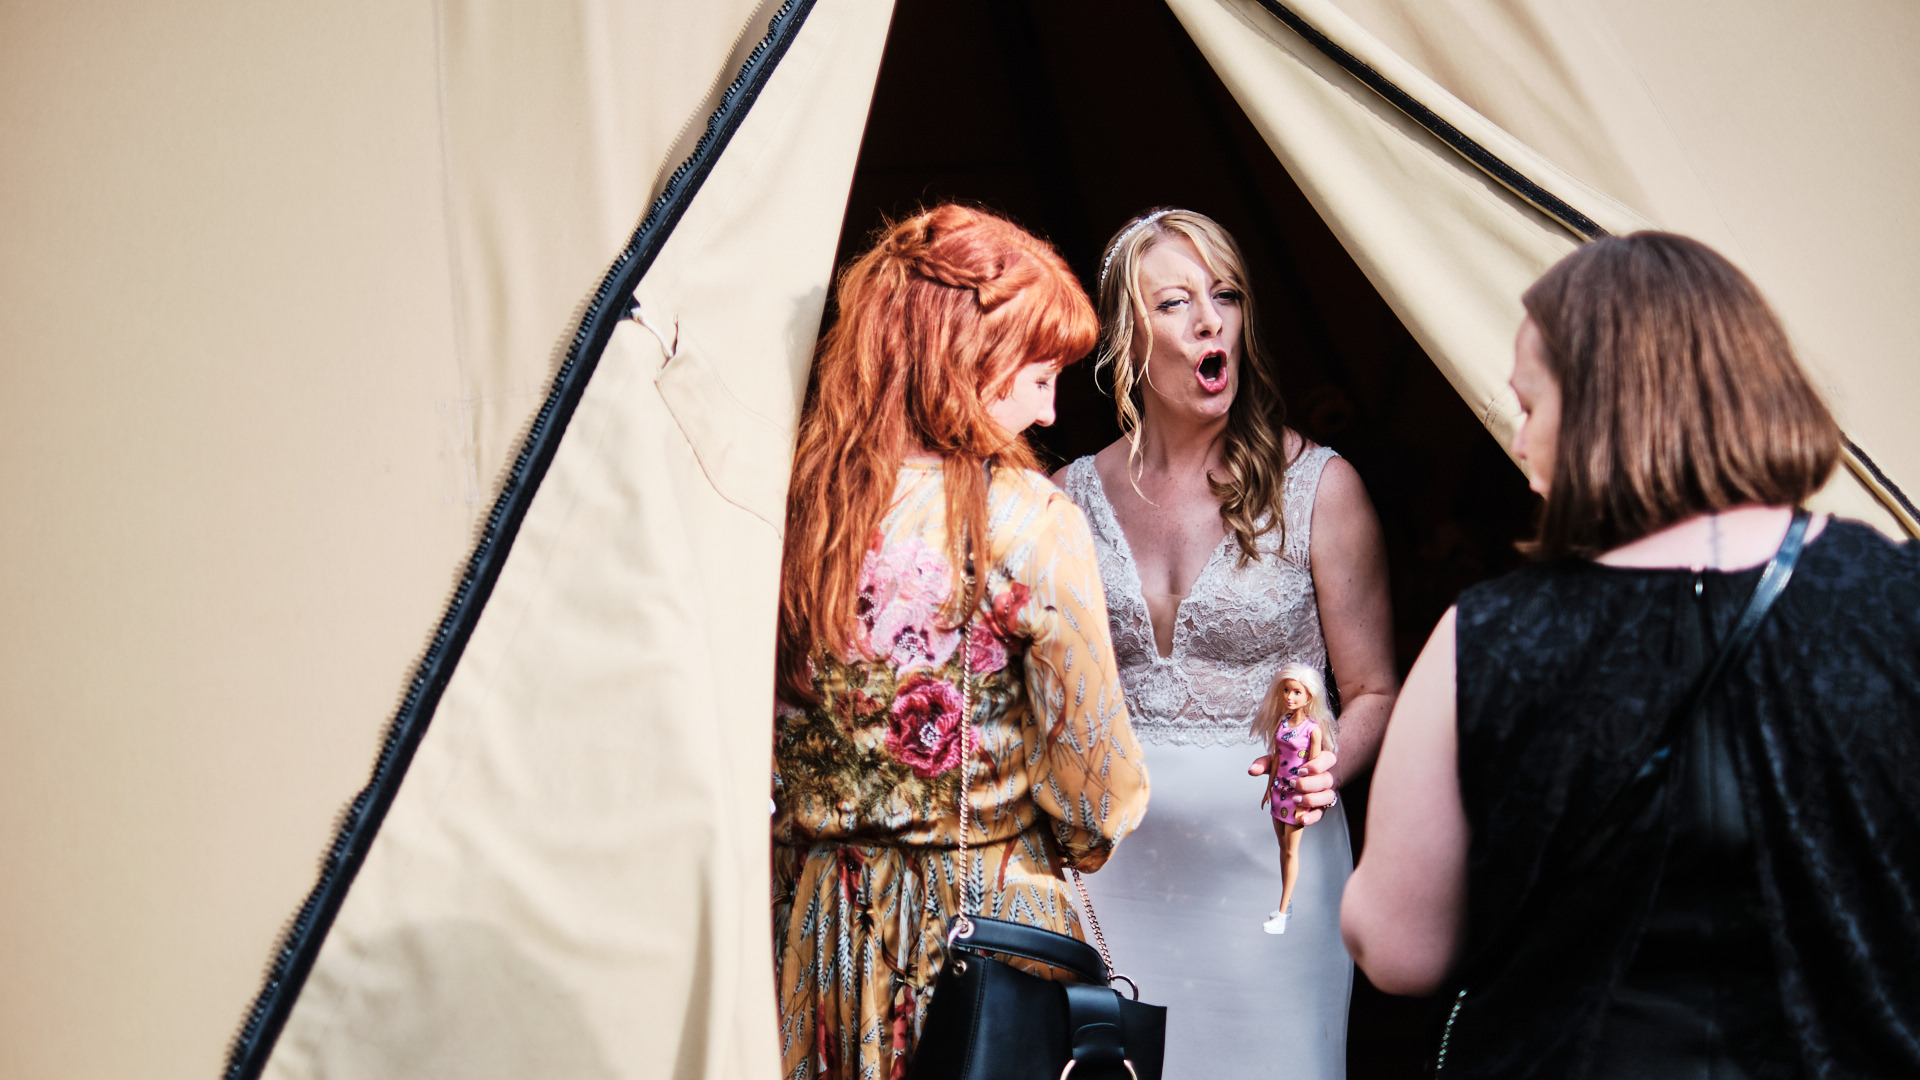 colour photograph of a bride holding a barbie doll and chatting to her guests during her wedding reception